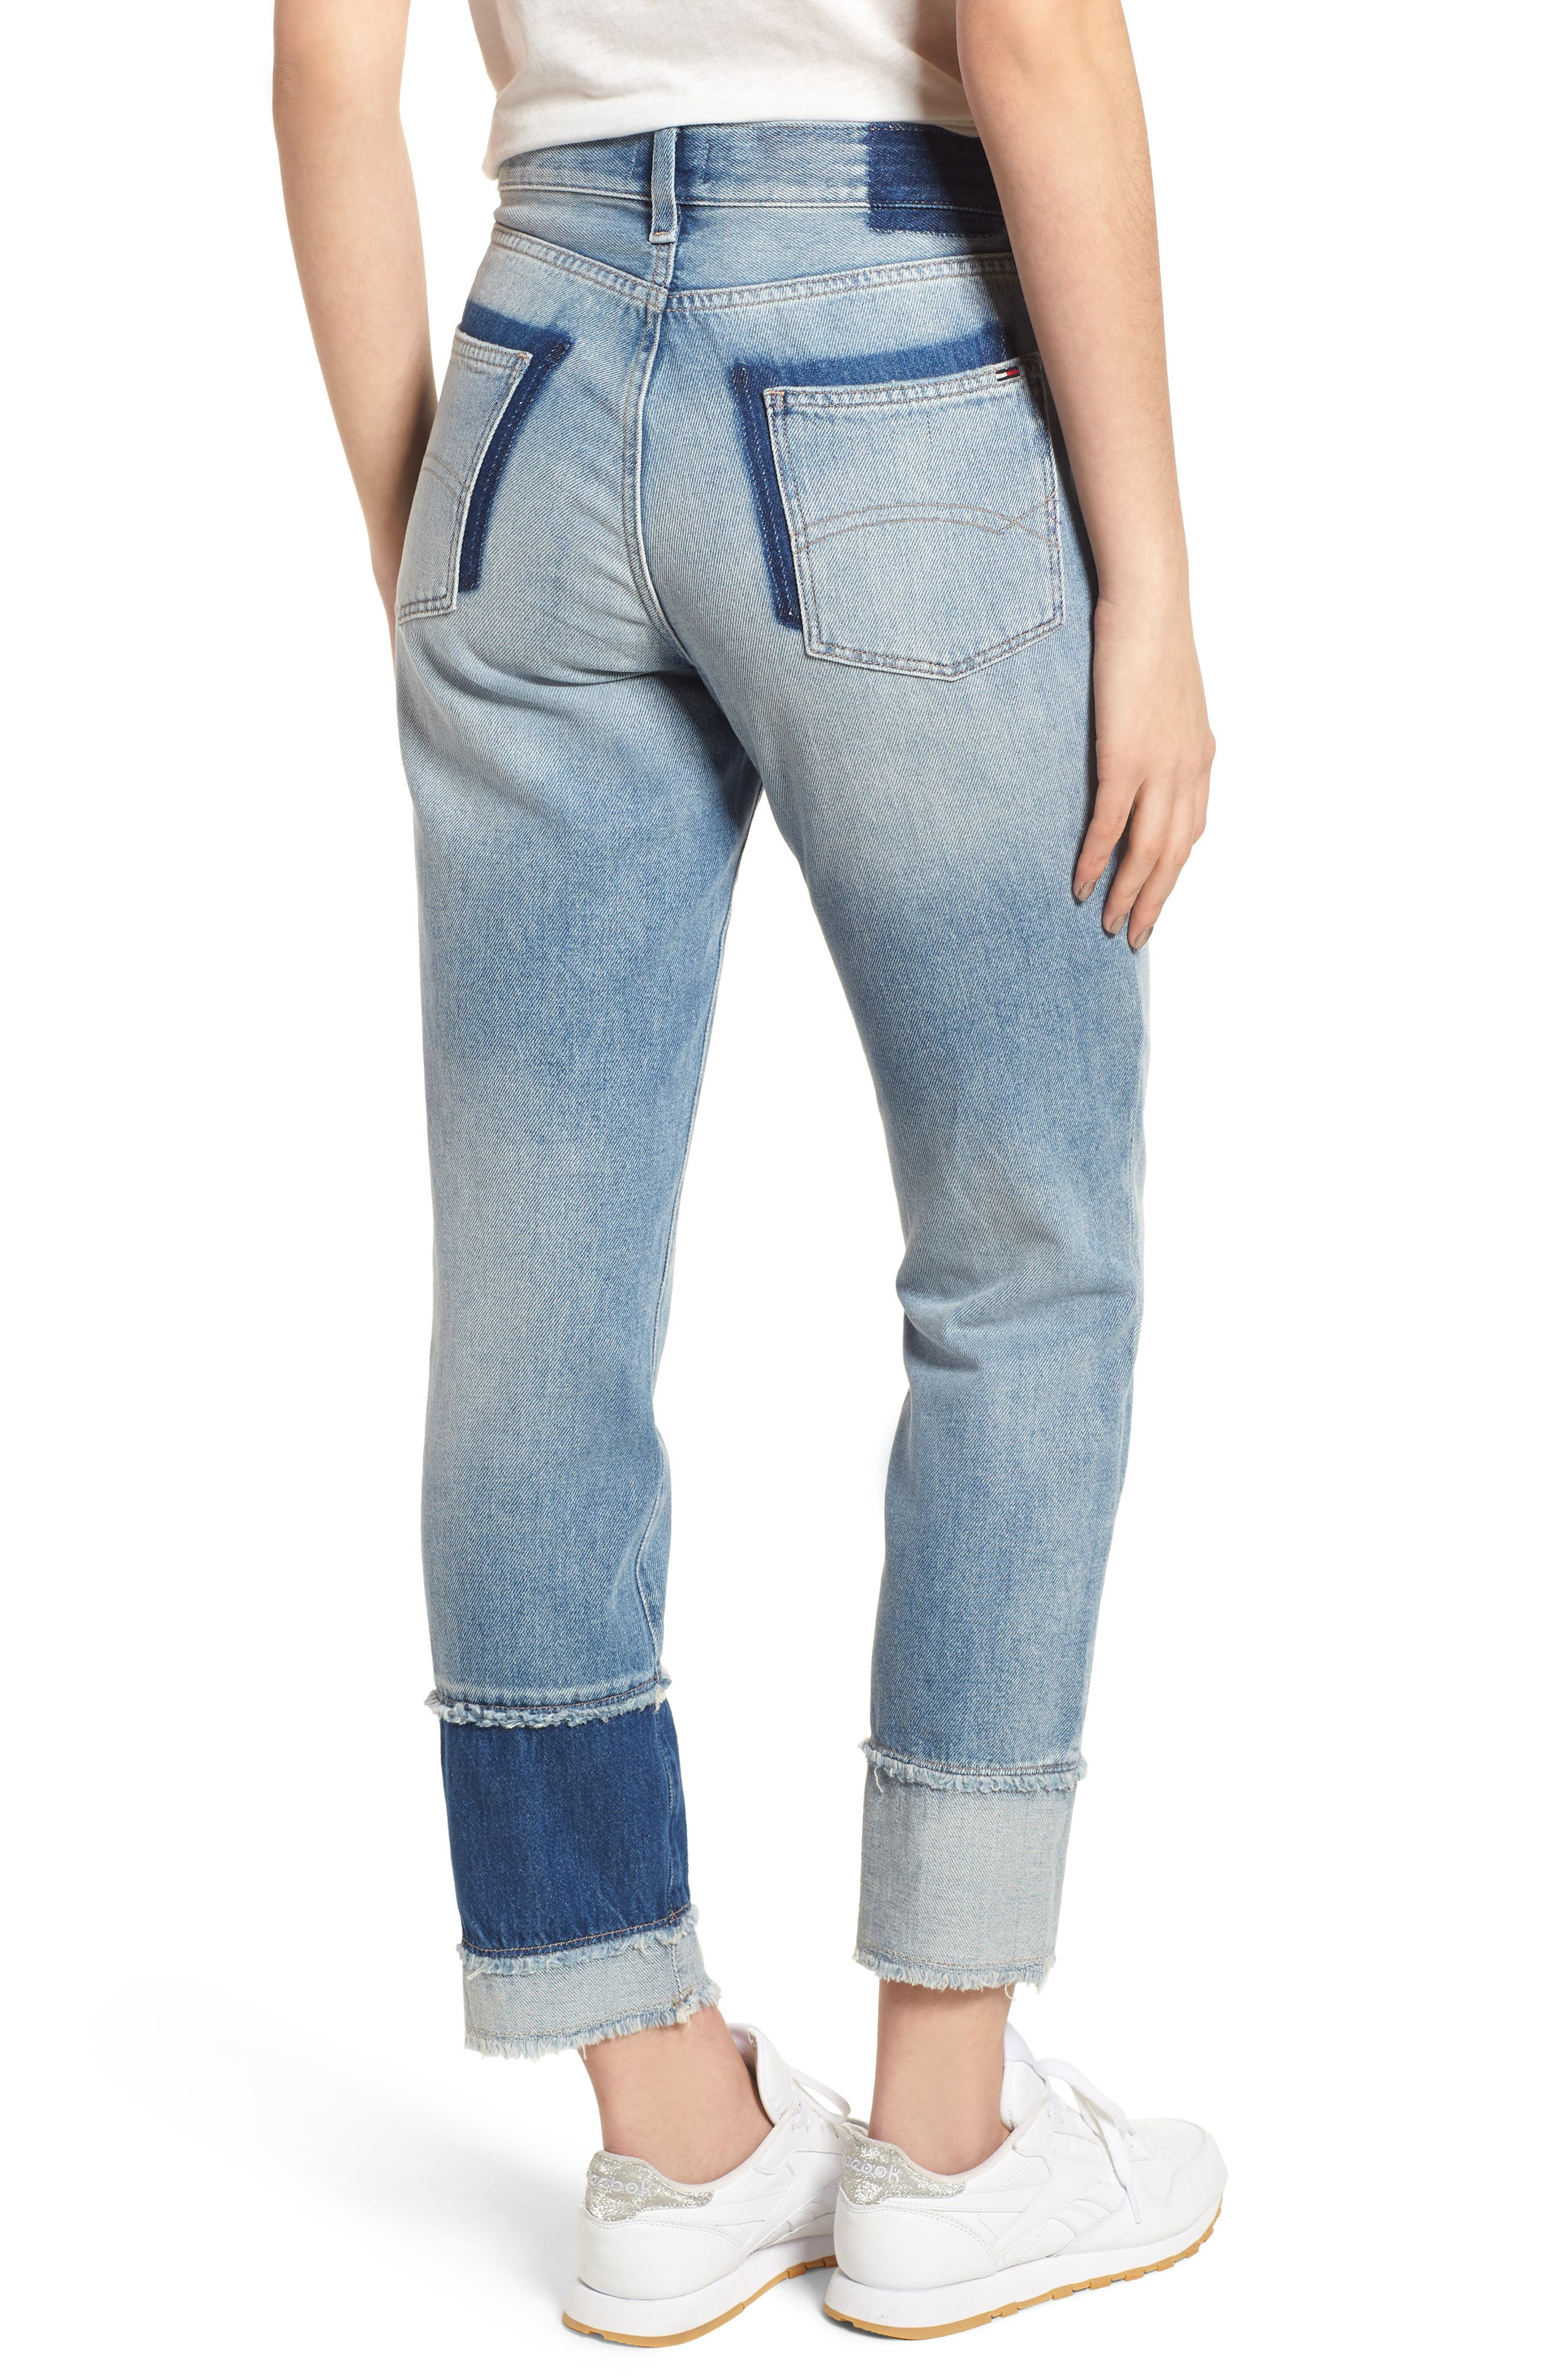 Izzy Layered Cuff Slim Leg Jeans,                             Alternate thumbnail 2, color,                             403